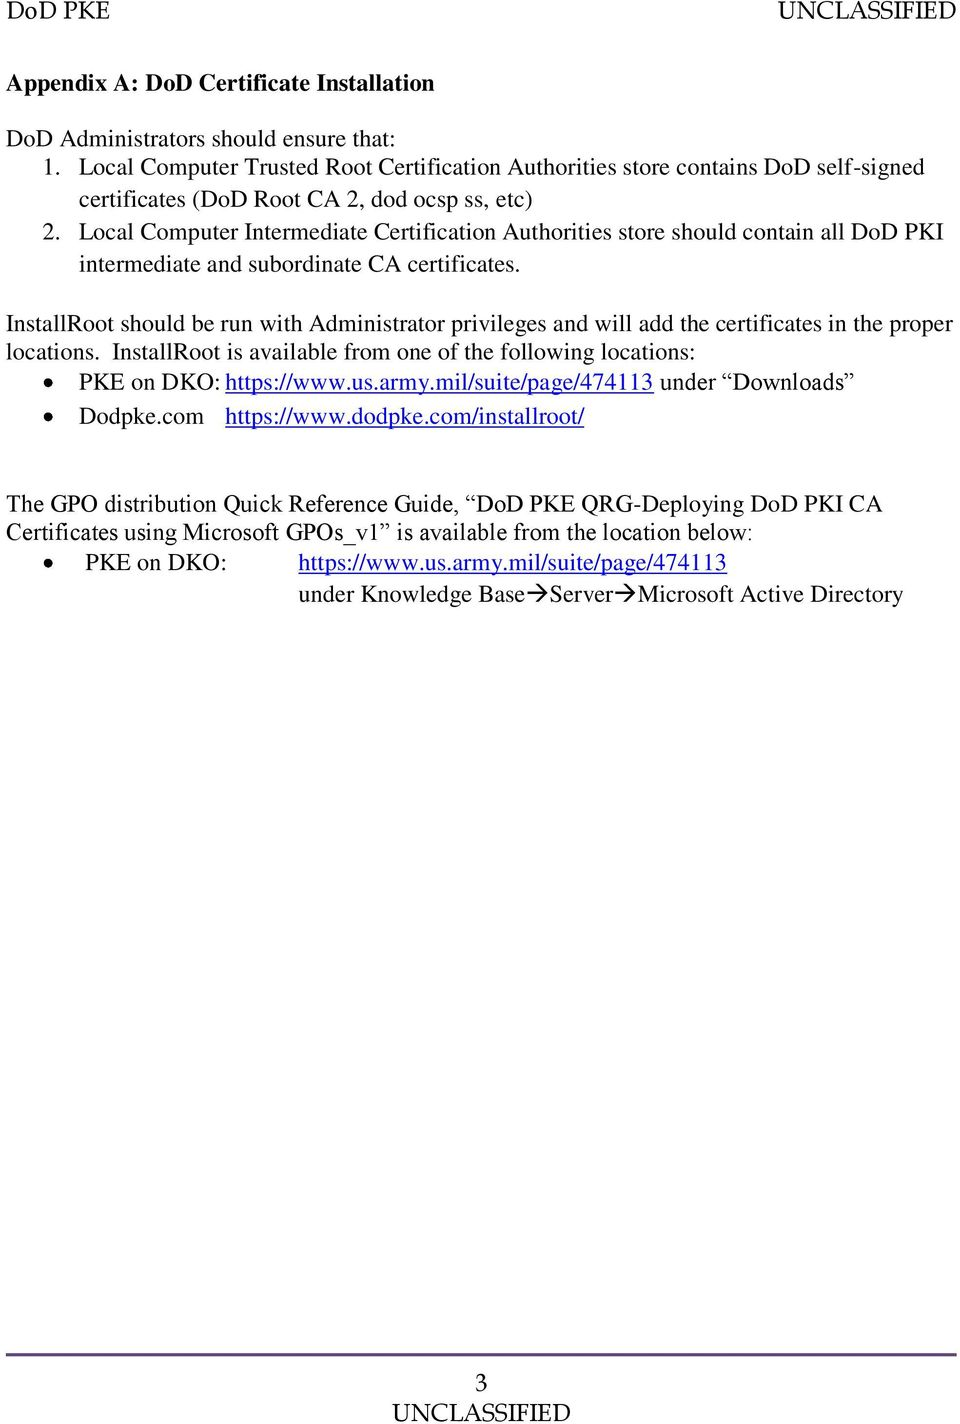 Dod Root Certificate Chaining Problem Pdf